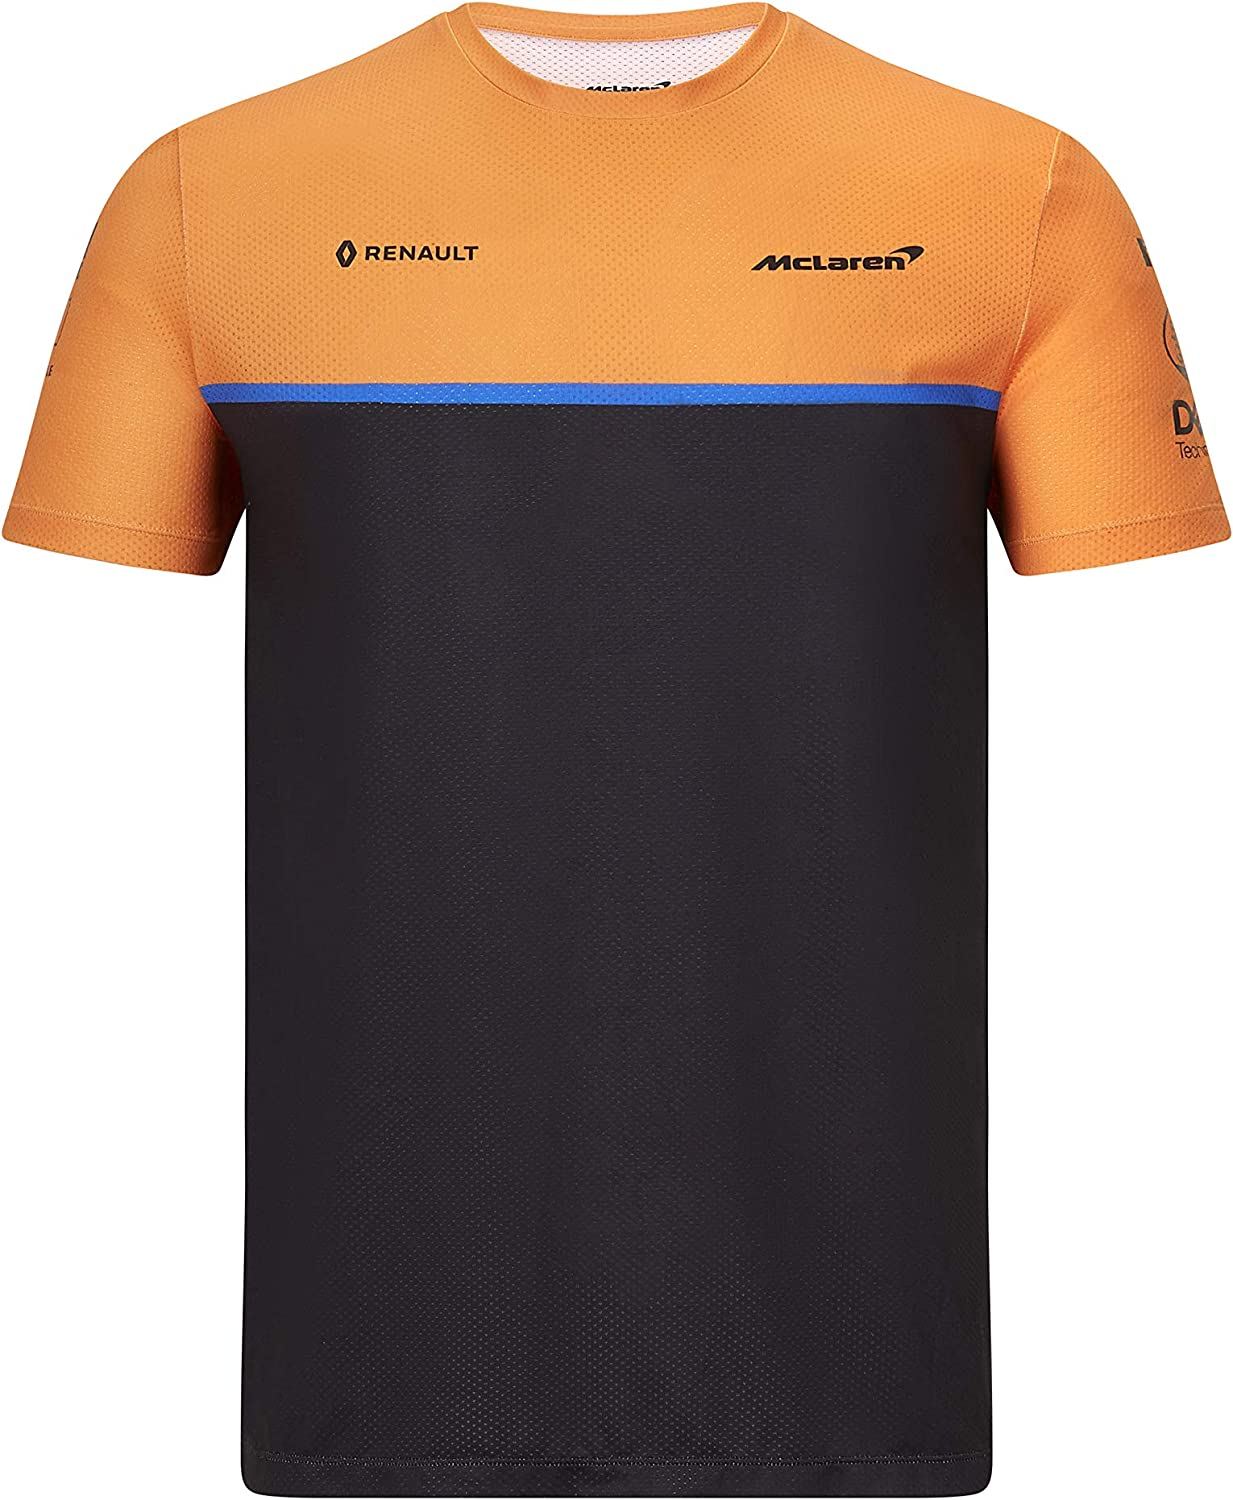 McLaren F1 2020 Mens Team Set Up Shirt